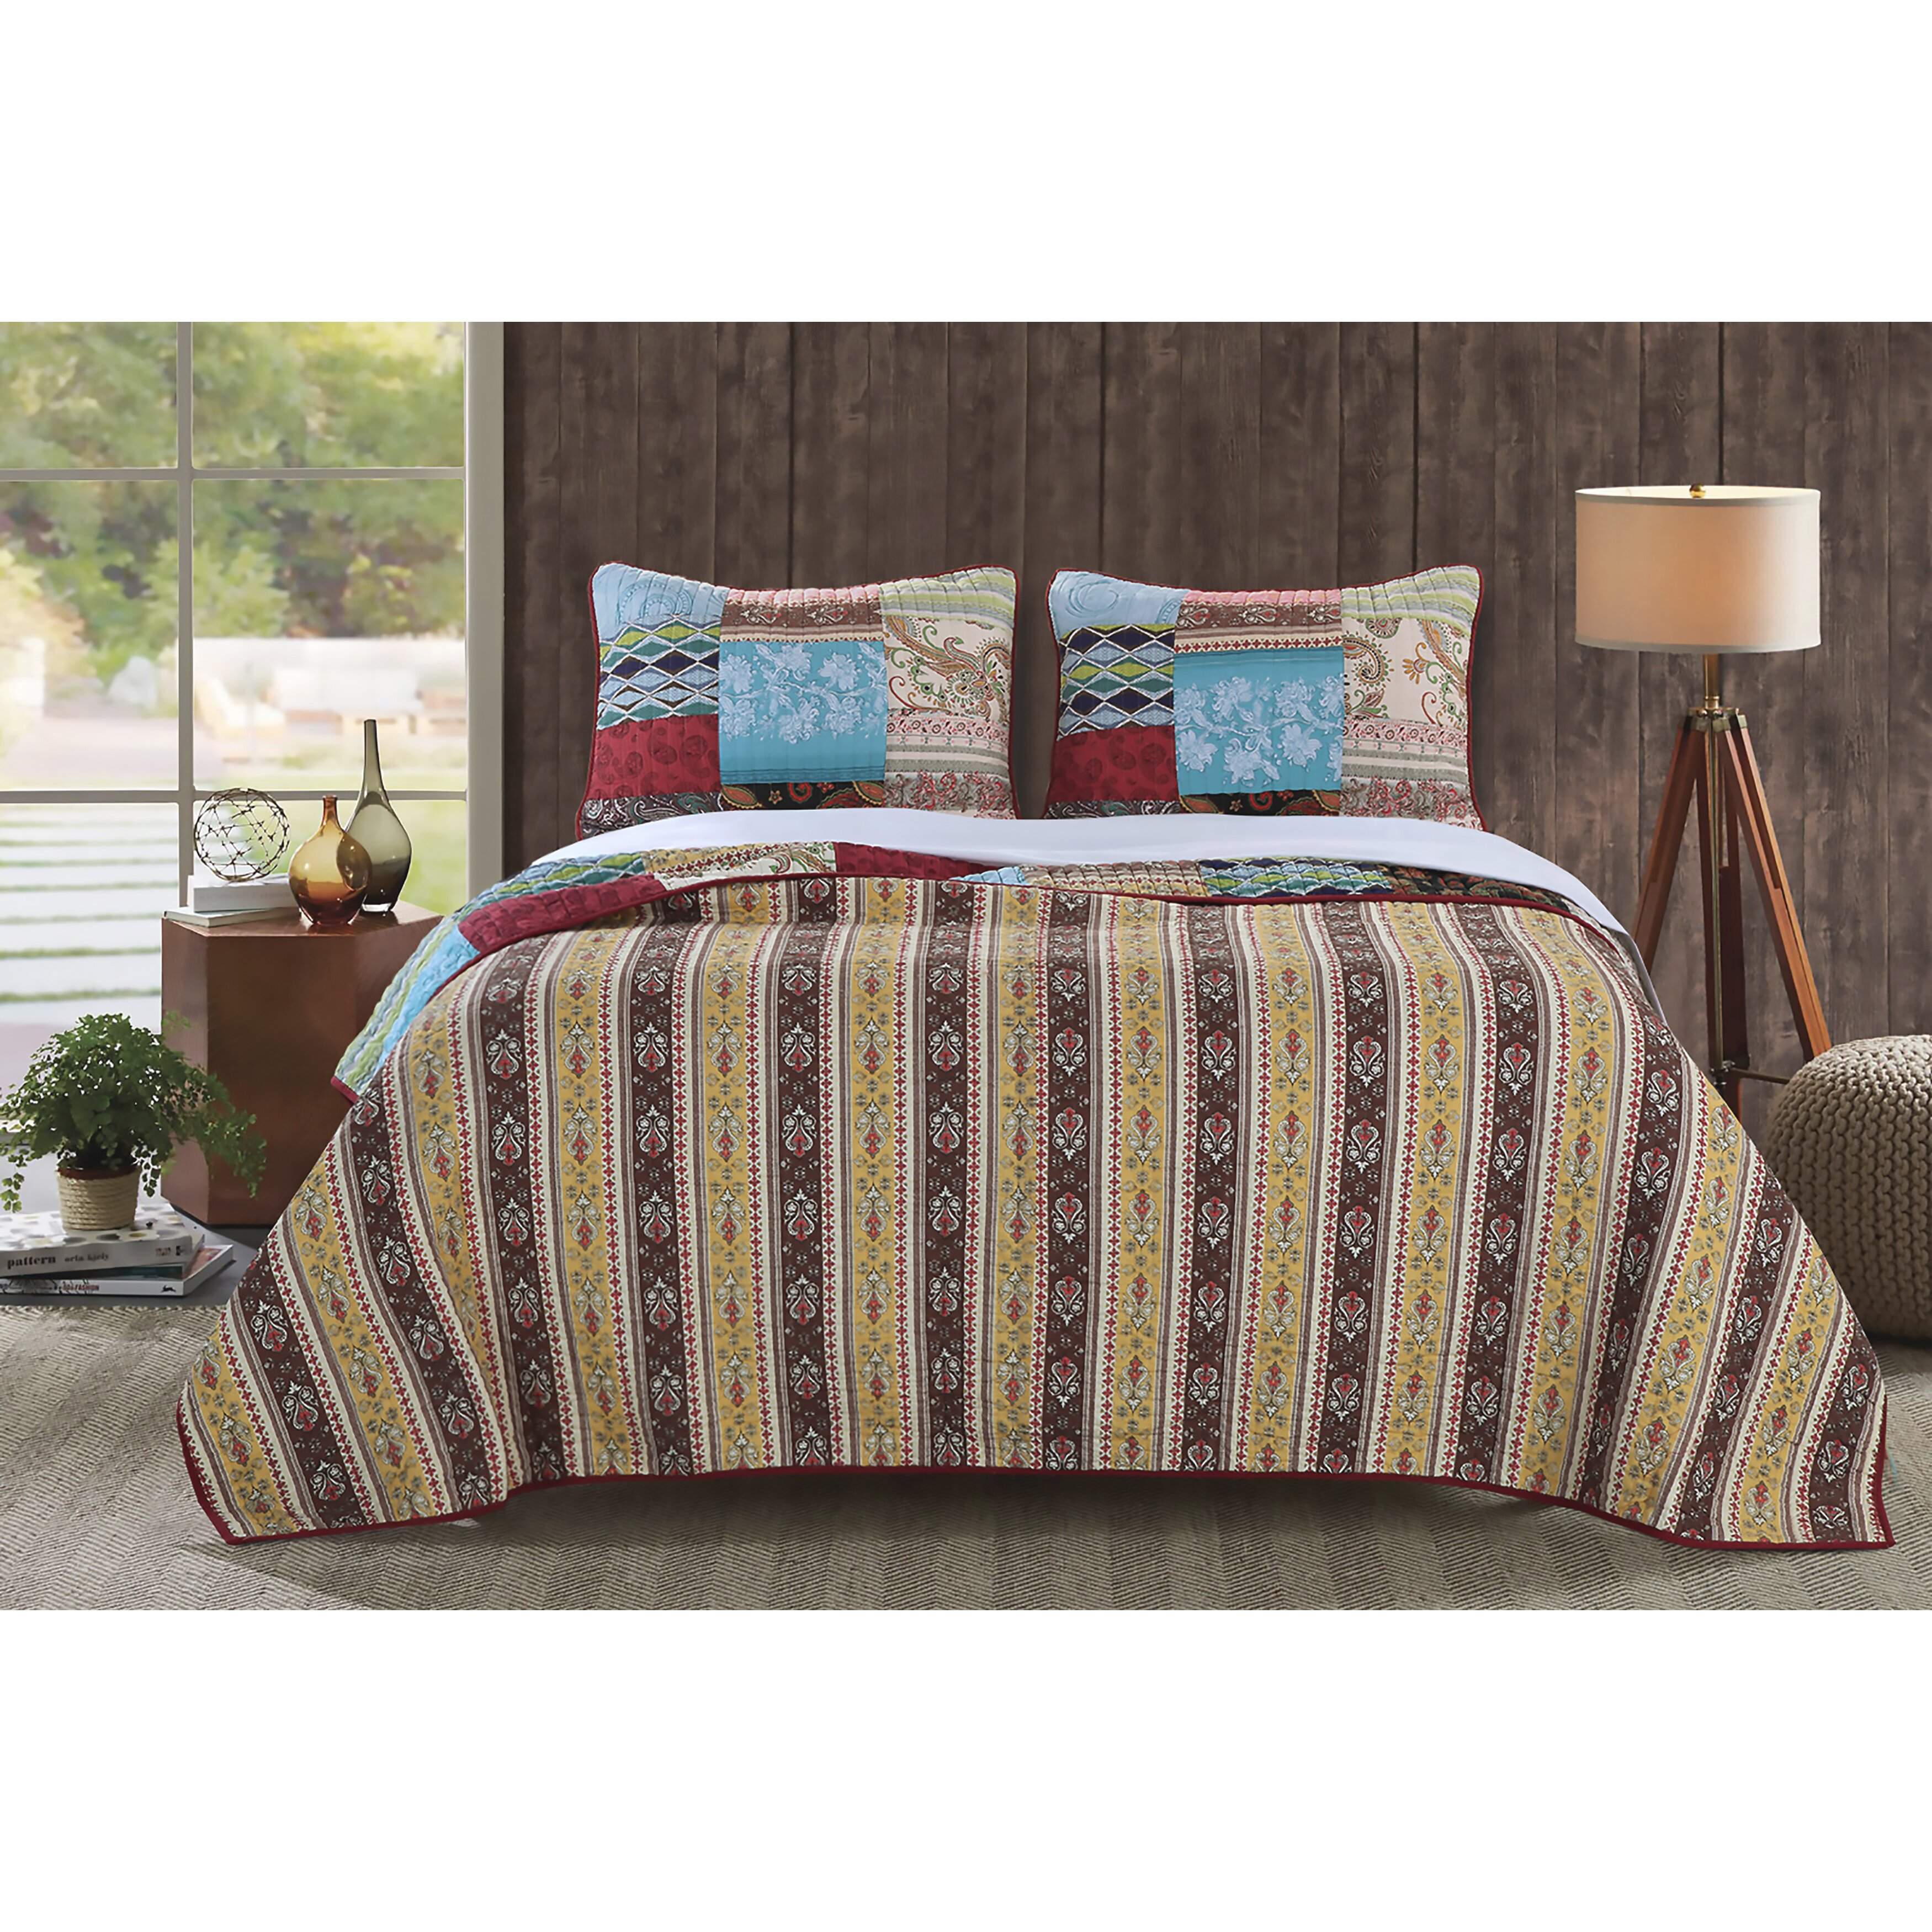 Greenland Home Fashions Bohemian Dream Reversible Quilt